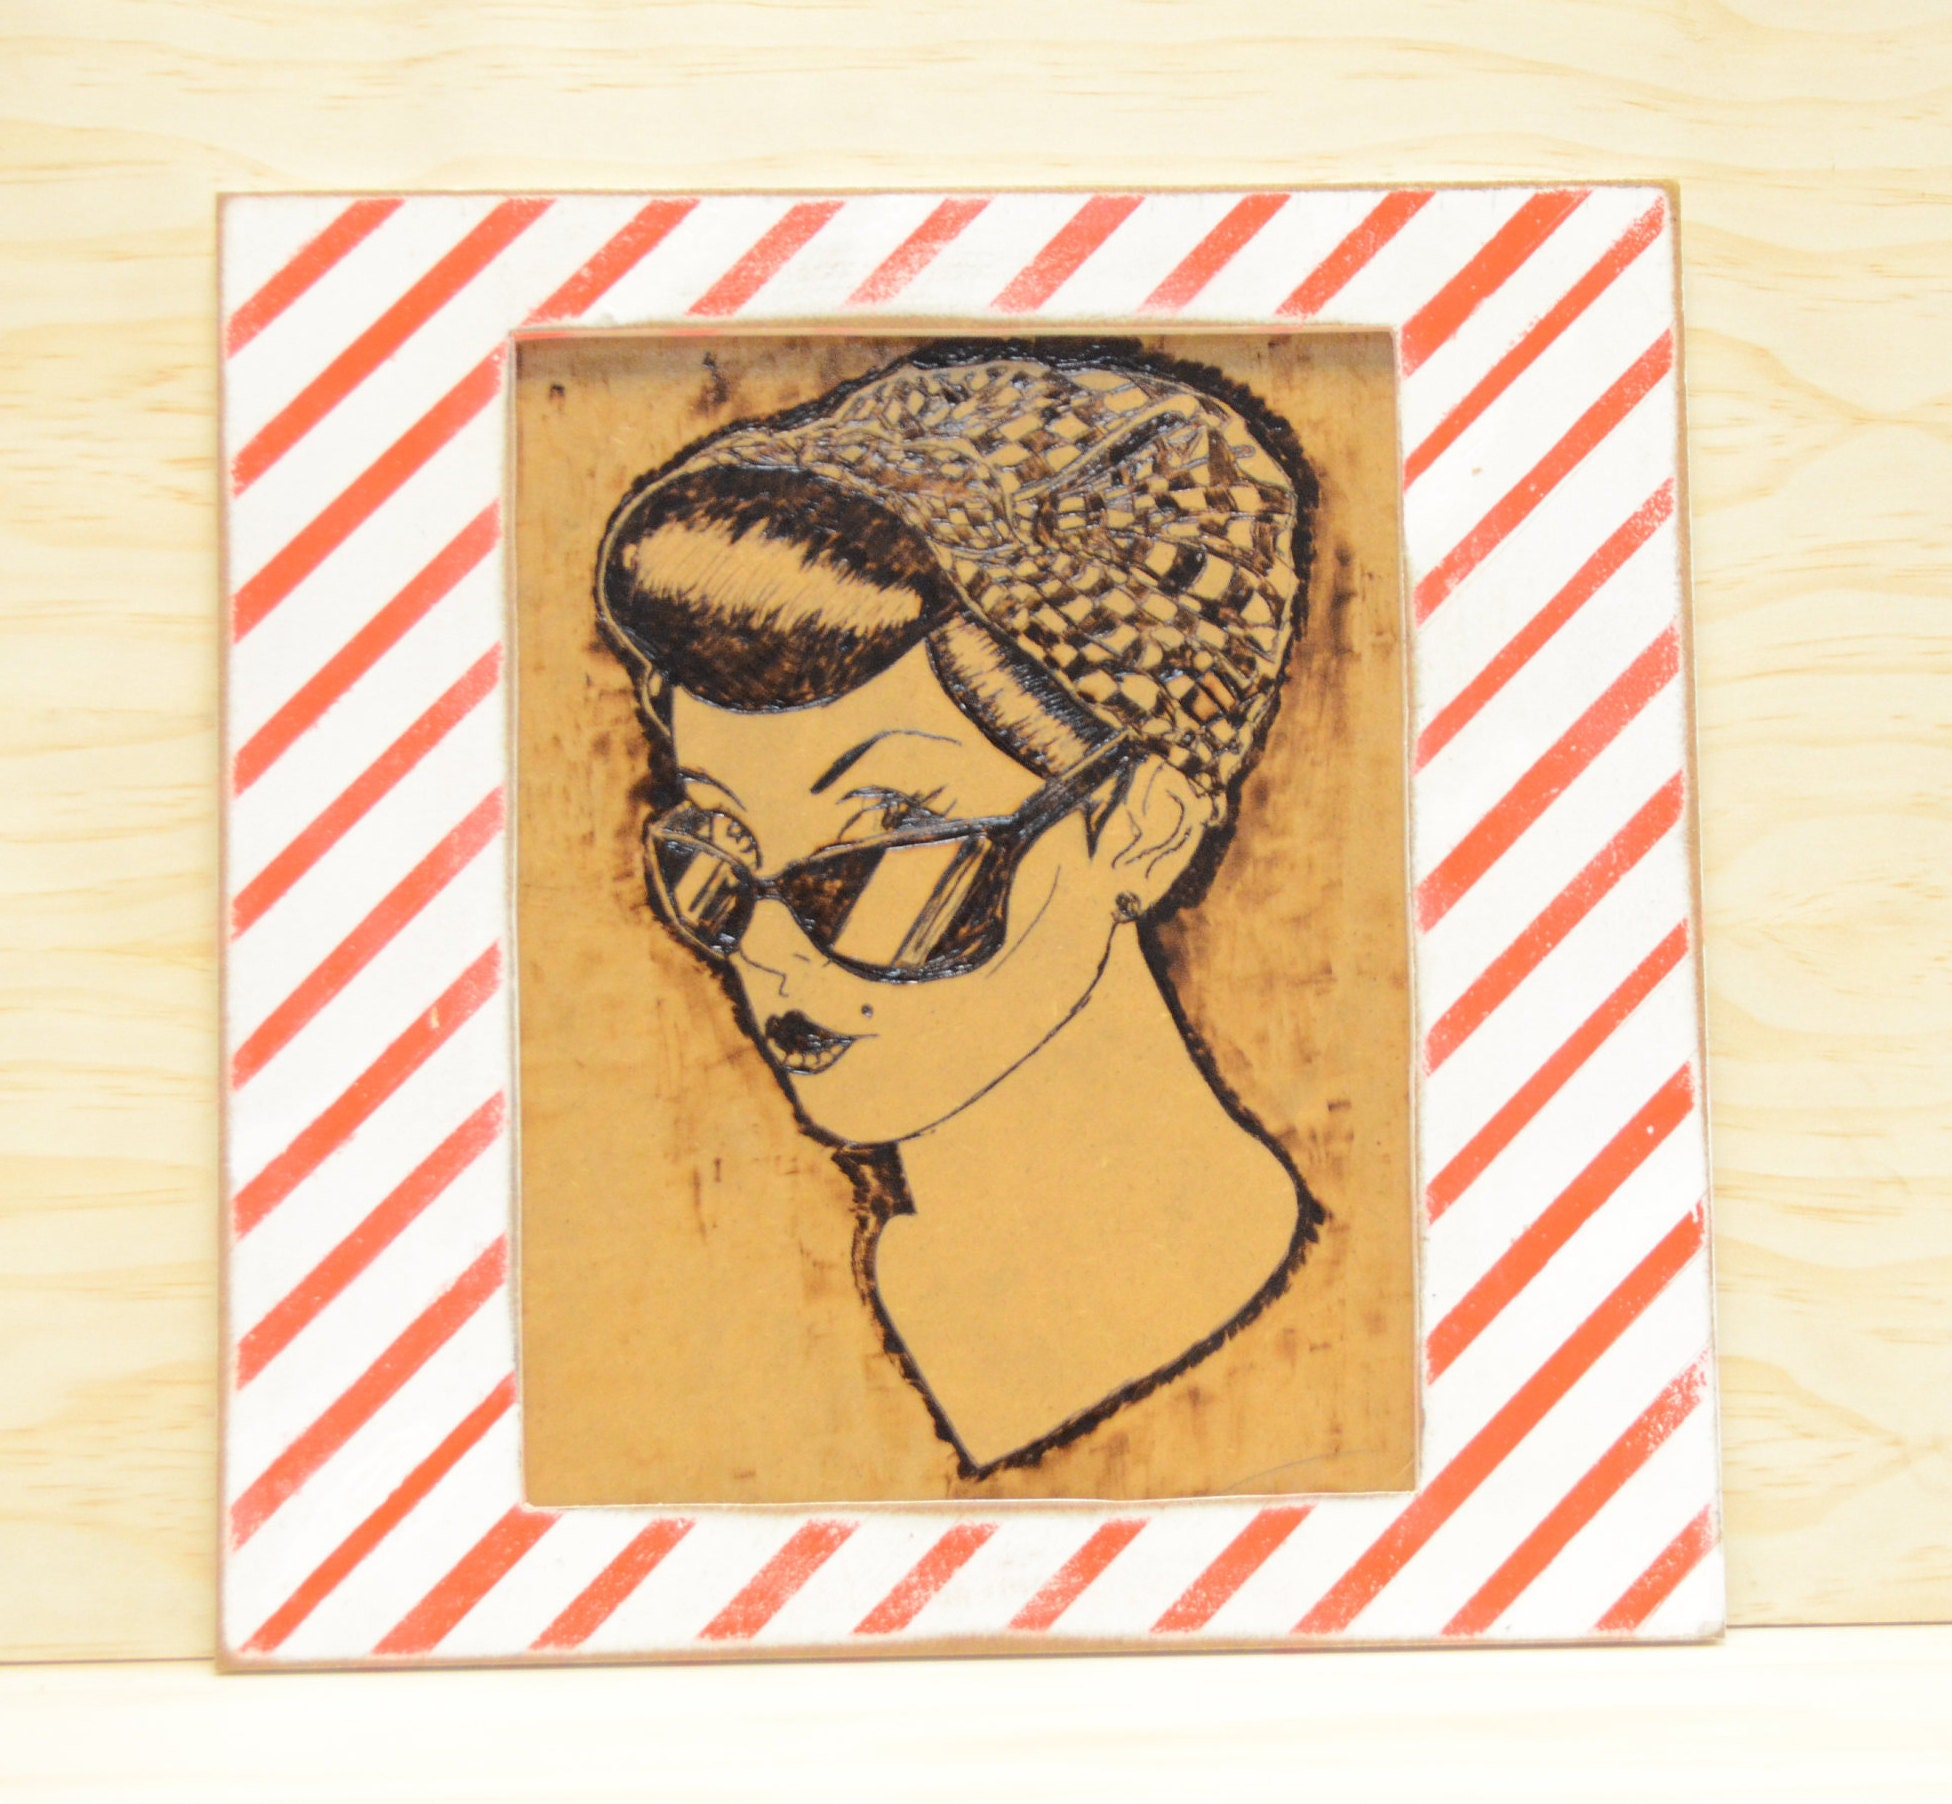 Pin-up girl wall art wood burning wood poster wood art